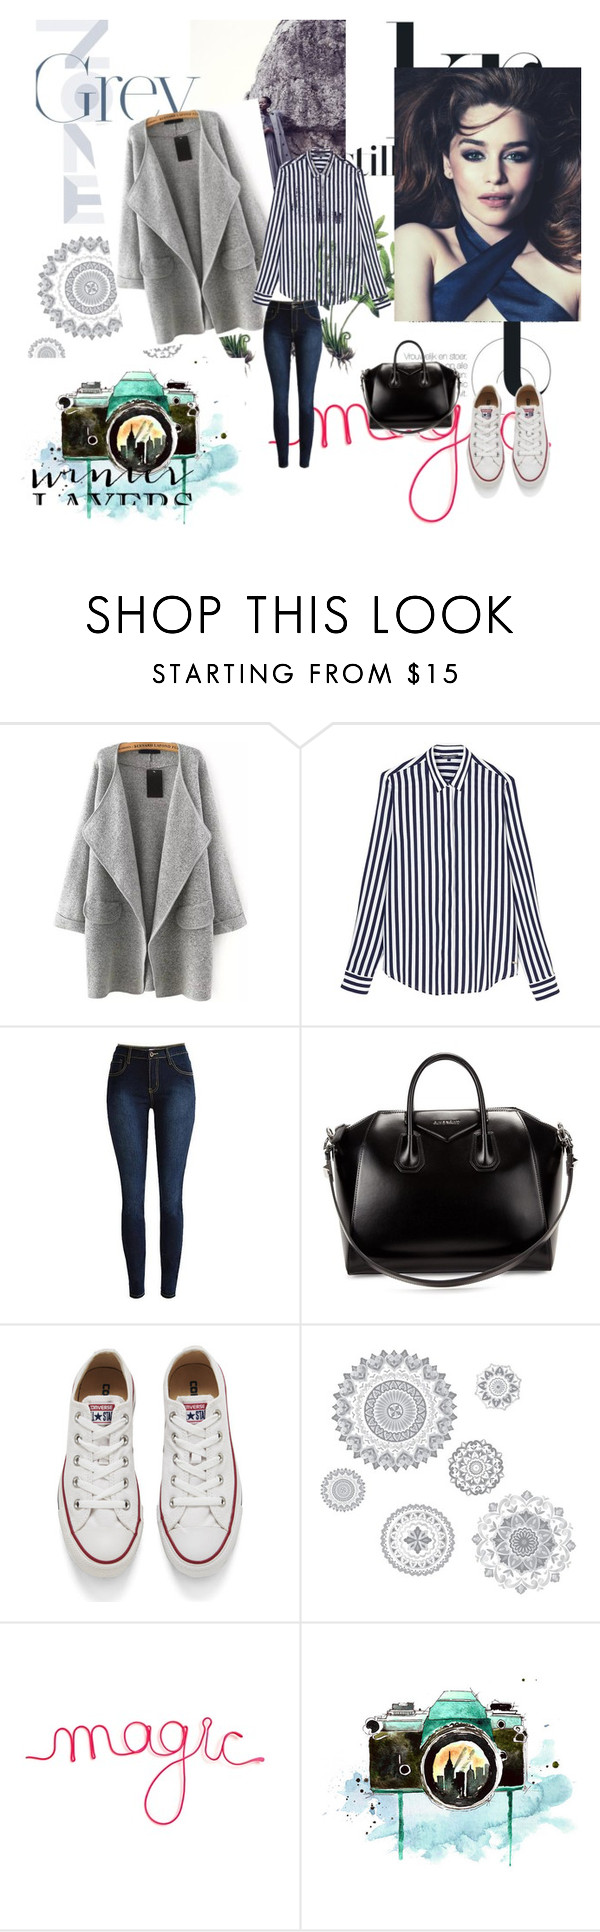 """""""Winter peaceful outfit"""" by kensi-lispal on Polyvore featuring Tommy Hilfiger, Givenchy, Converse, WallPops, women's clothing, women's fashion, women, female, woman and misses"""